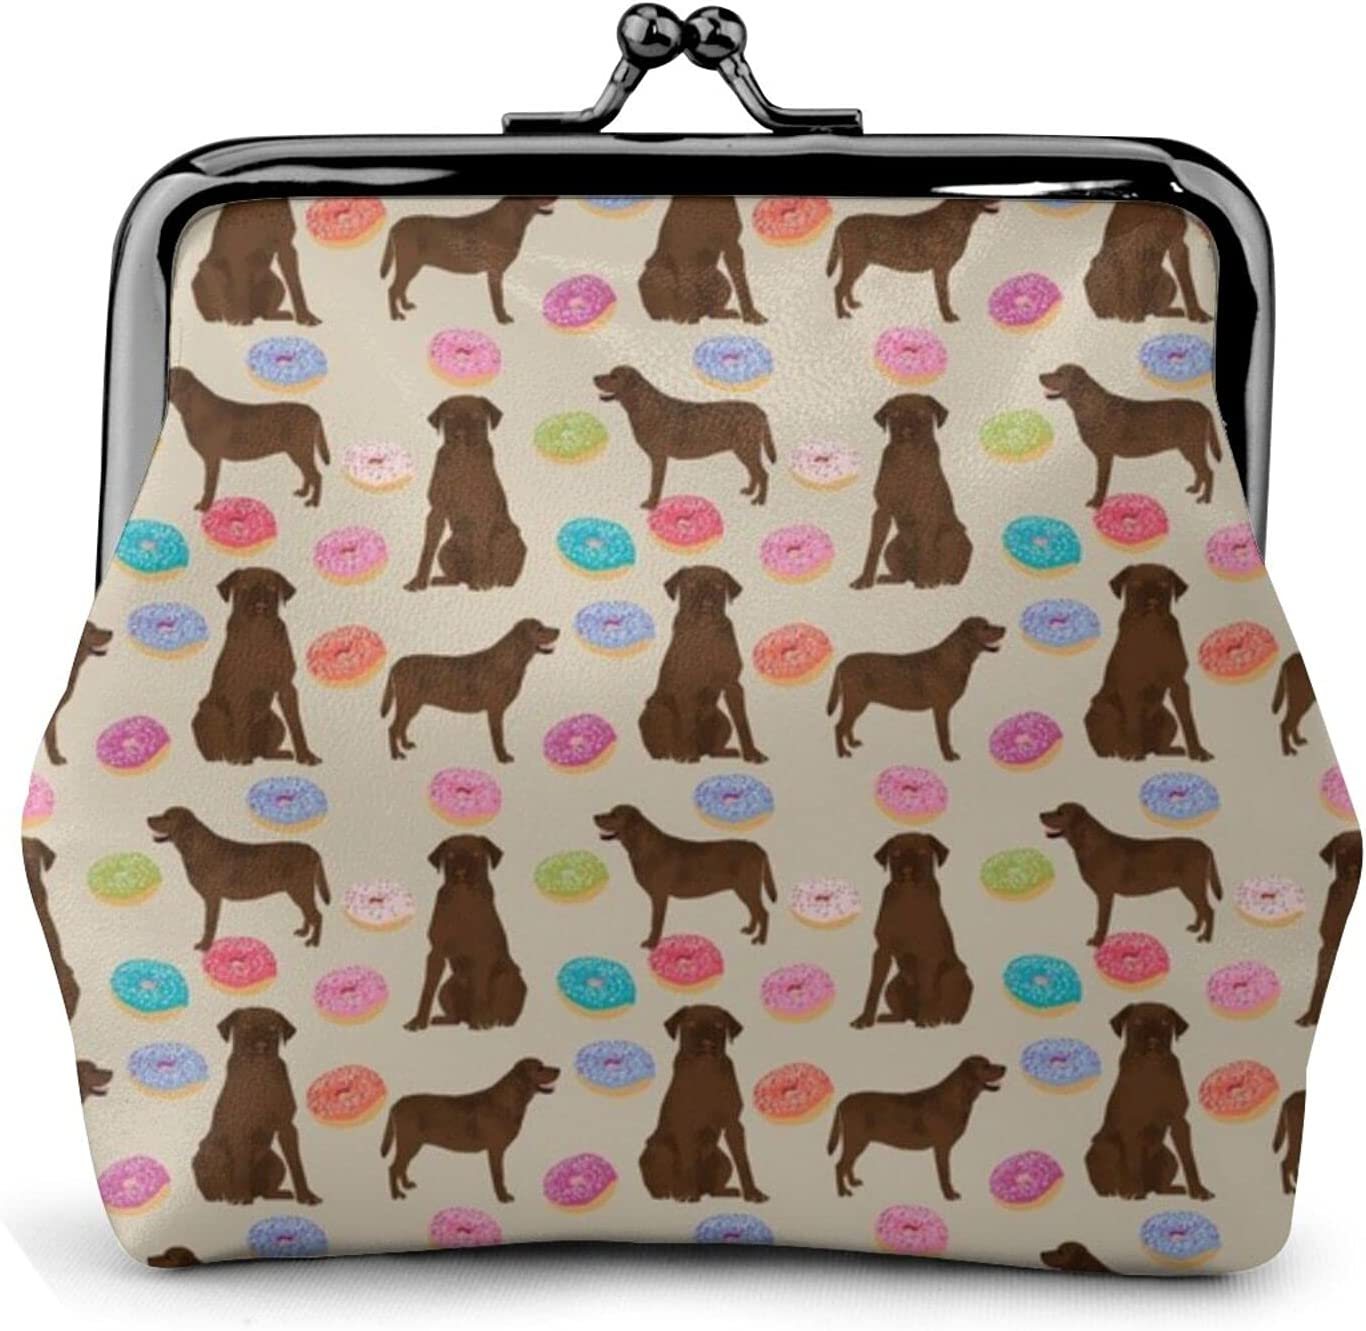 Chocolate Labrador Donuts 1557 Women'S Wallet Buckle Coin Purses Pouch Kiss-lock Change Travel Makeup Wallets, Black, One Size